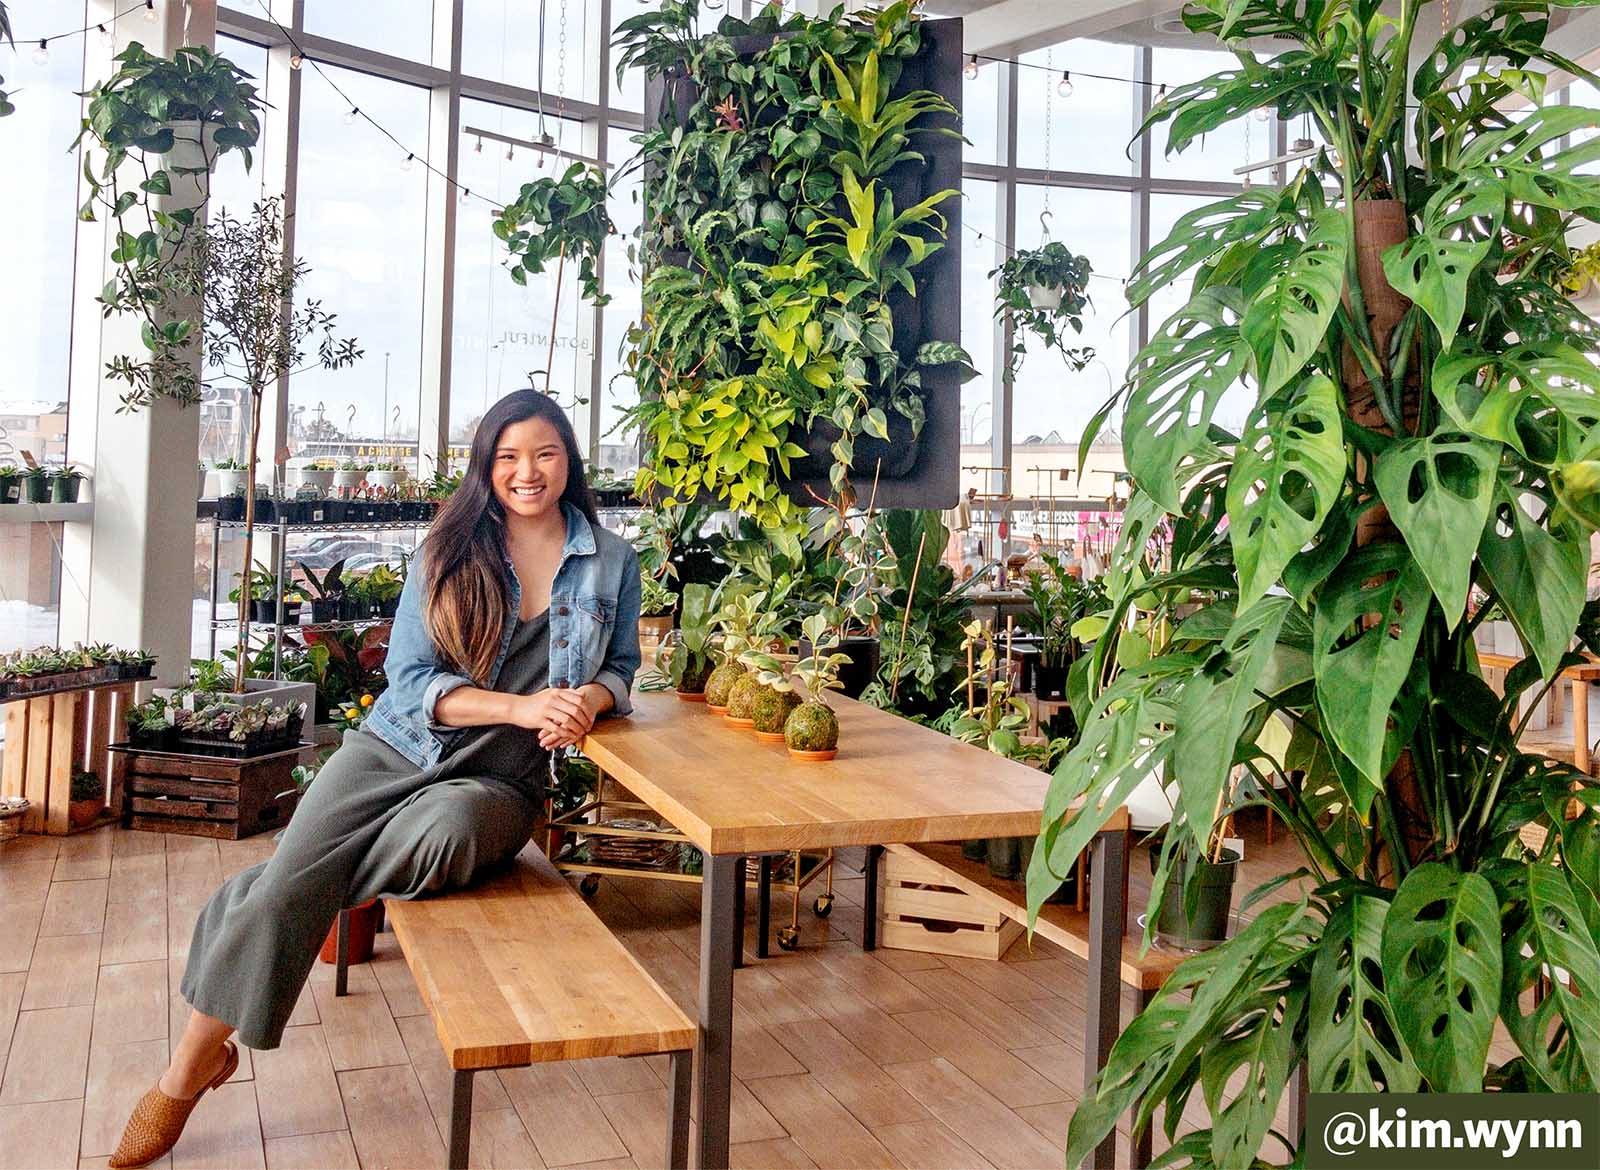 Q&A: Balancing Style and Greenery in Design with @kim.wynn